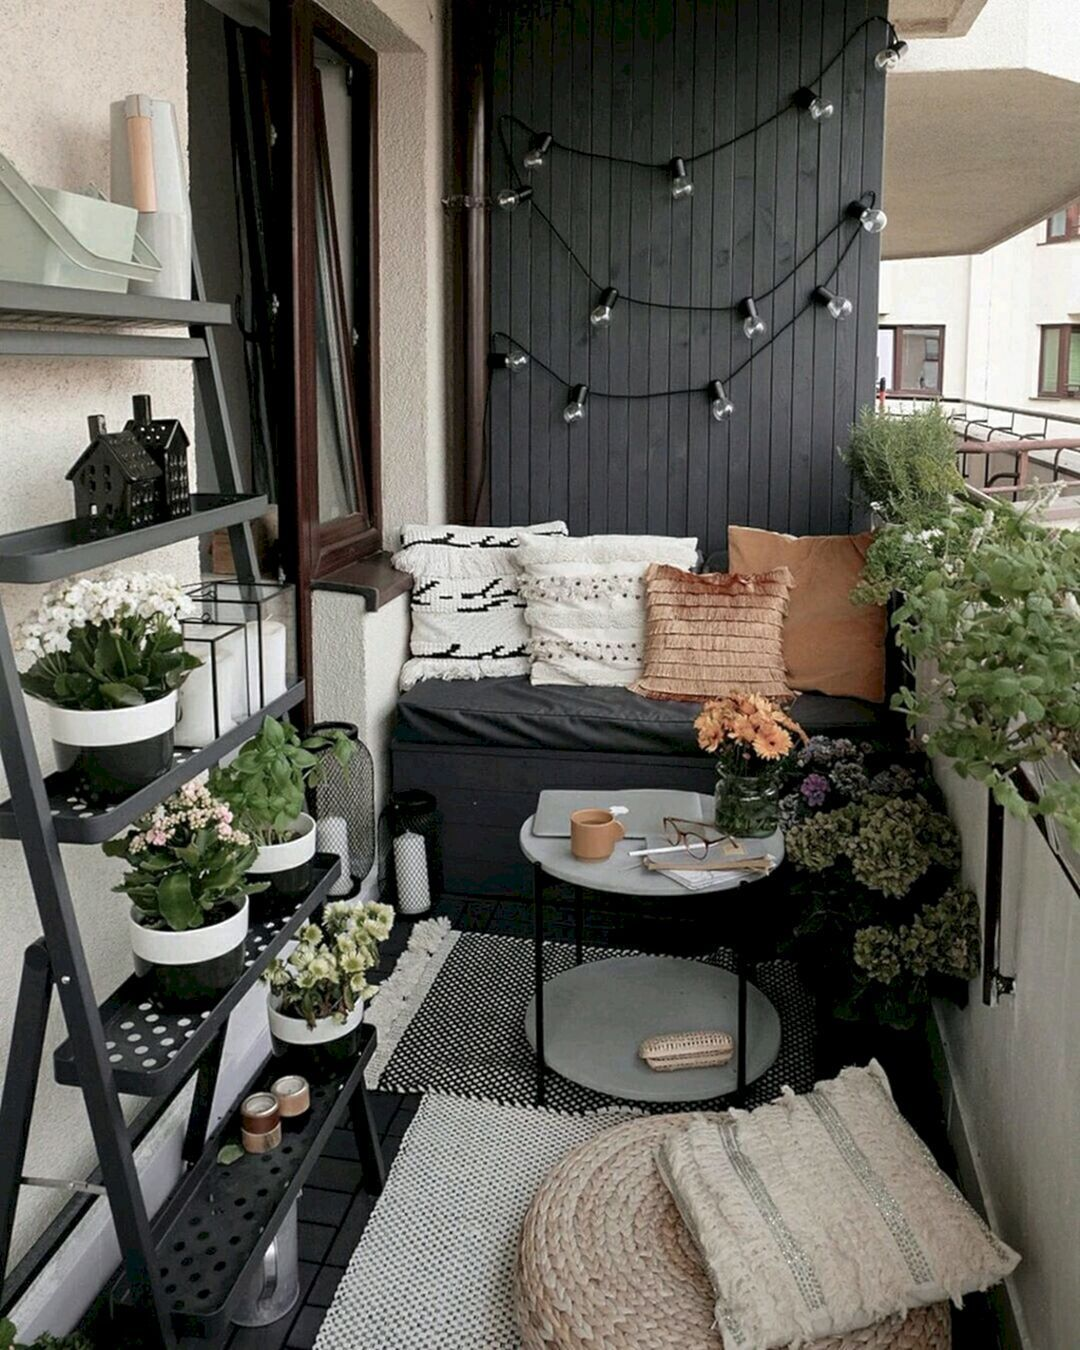 20 Gemutliche Und Kleine Wohnung Balkon Dekoration Ideen In 2020 Small Balcony Decor Apartment Balcony Decorating Balcony Decor